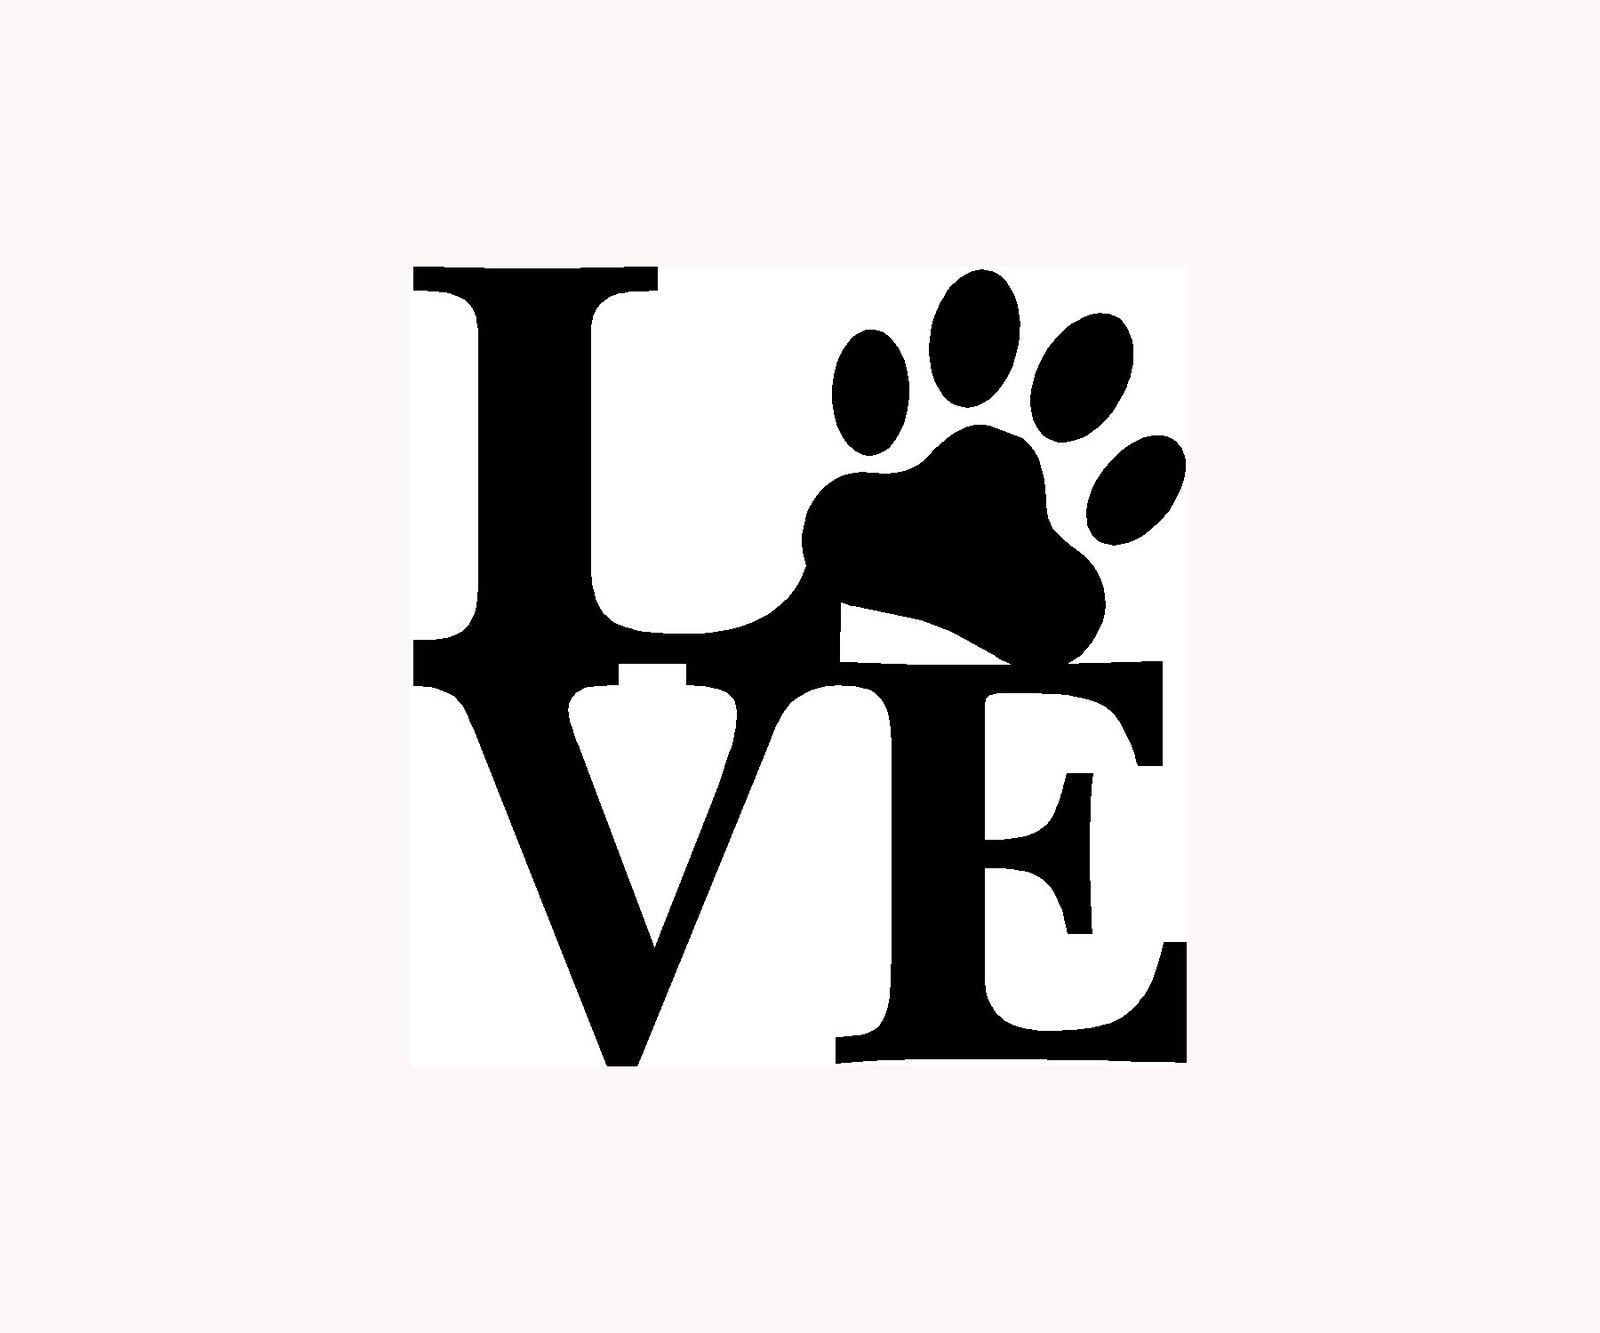 Details About Love Paw Sticker Family Car Window Vinyl